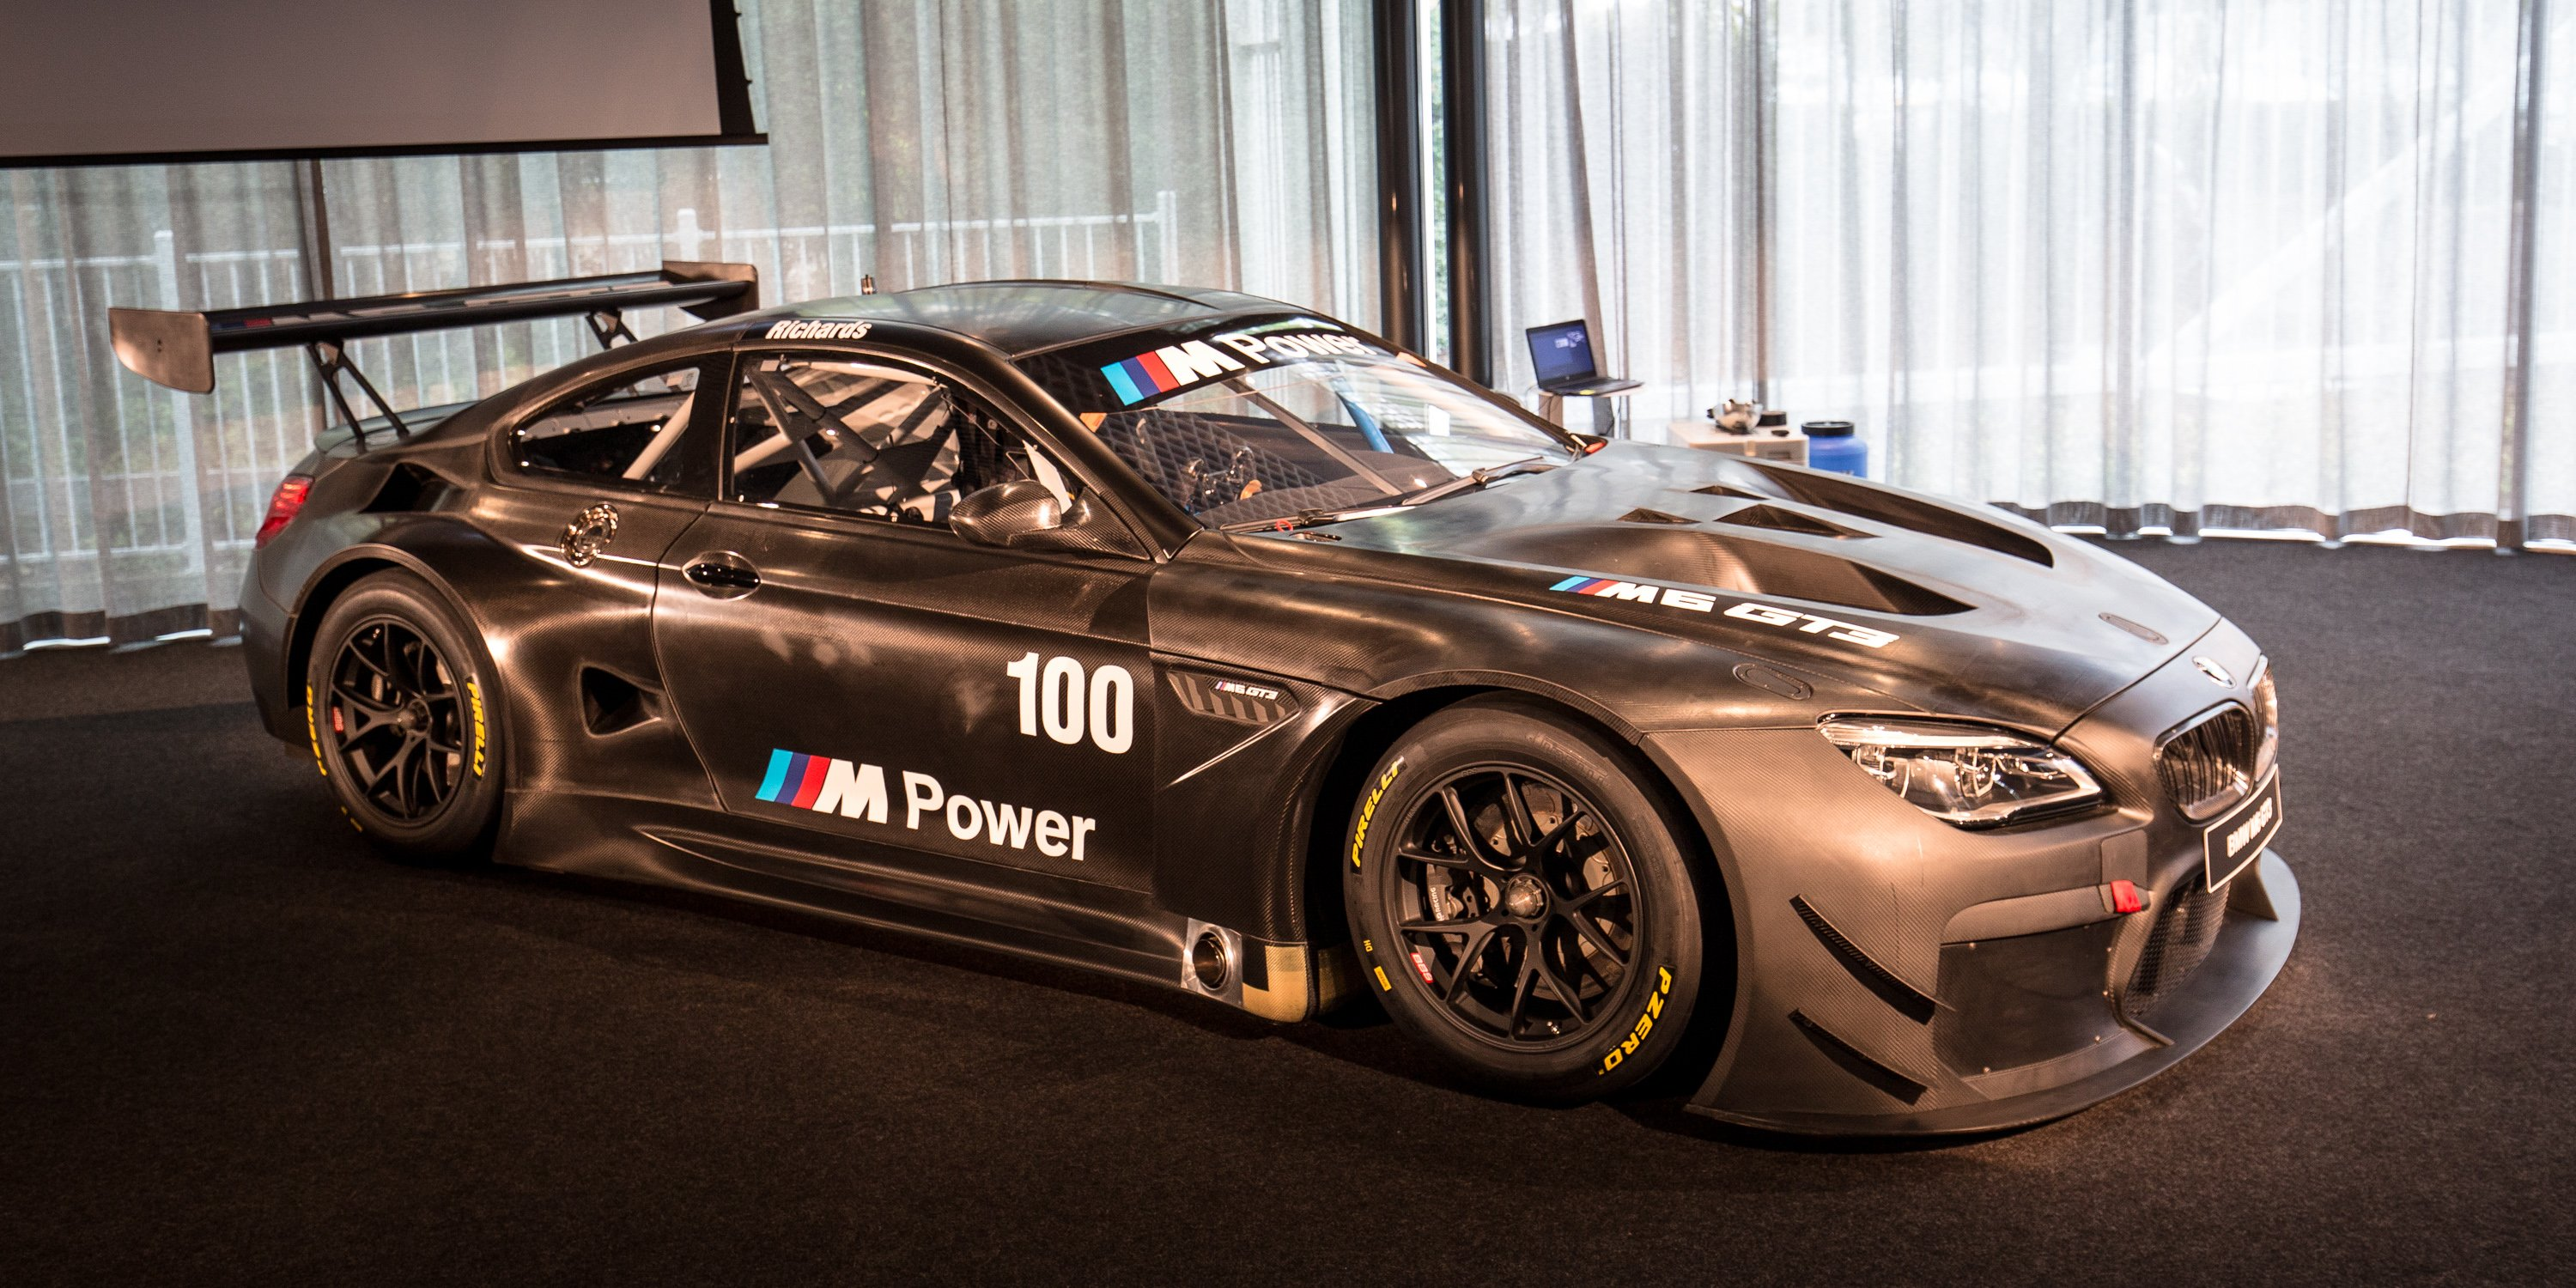 Lastest 2016 BMW M6 GT3 Twinturbo Racer Unveiled In Melbourne